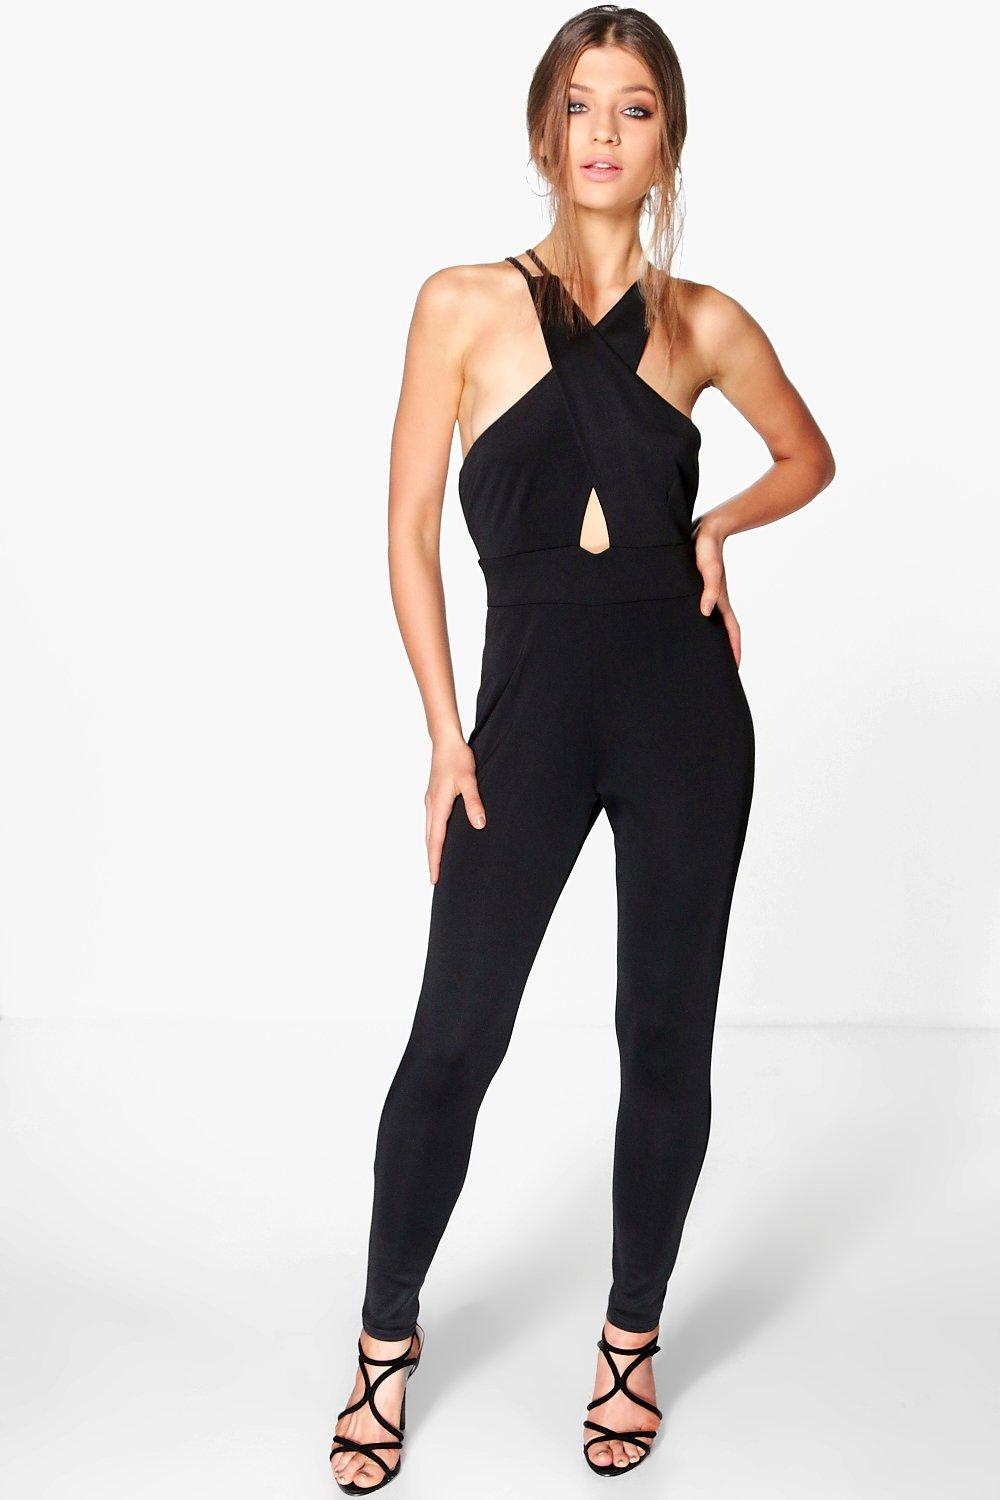 Eva Cross Top Strappy Skinny Leg Jumpsuit